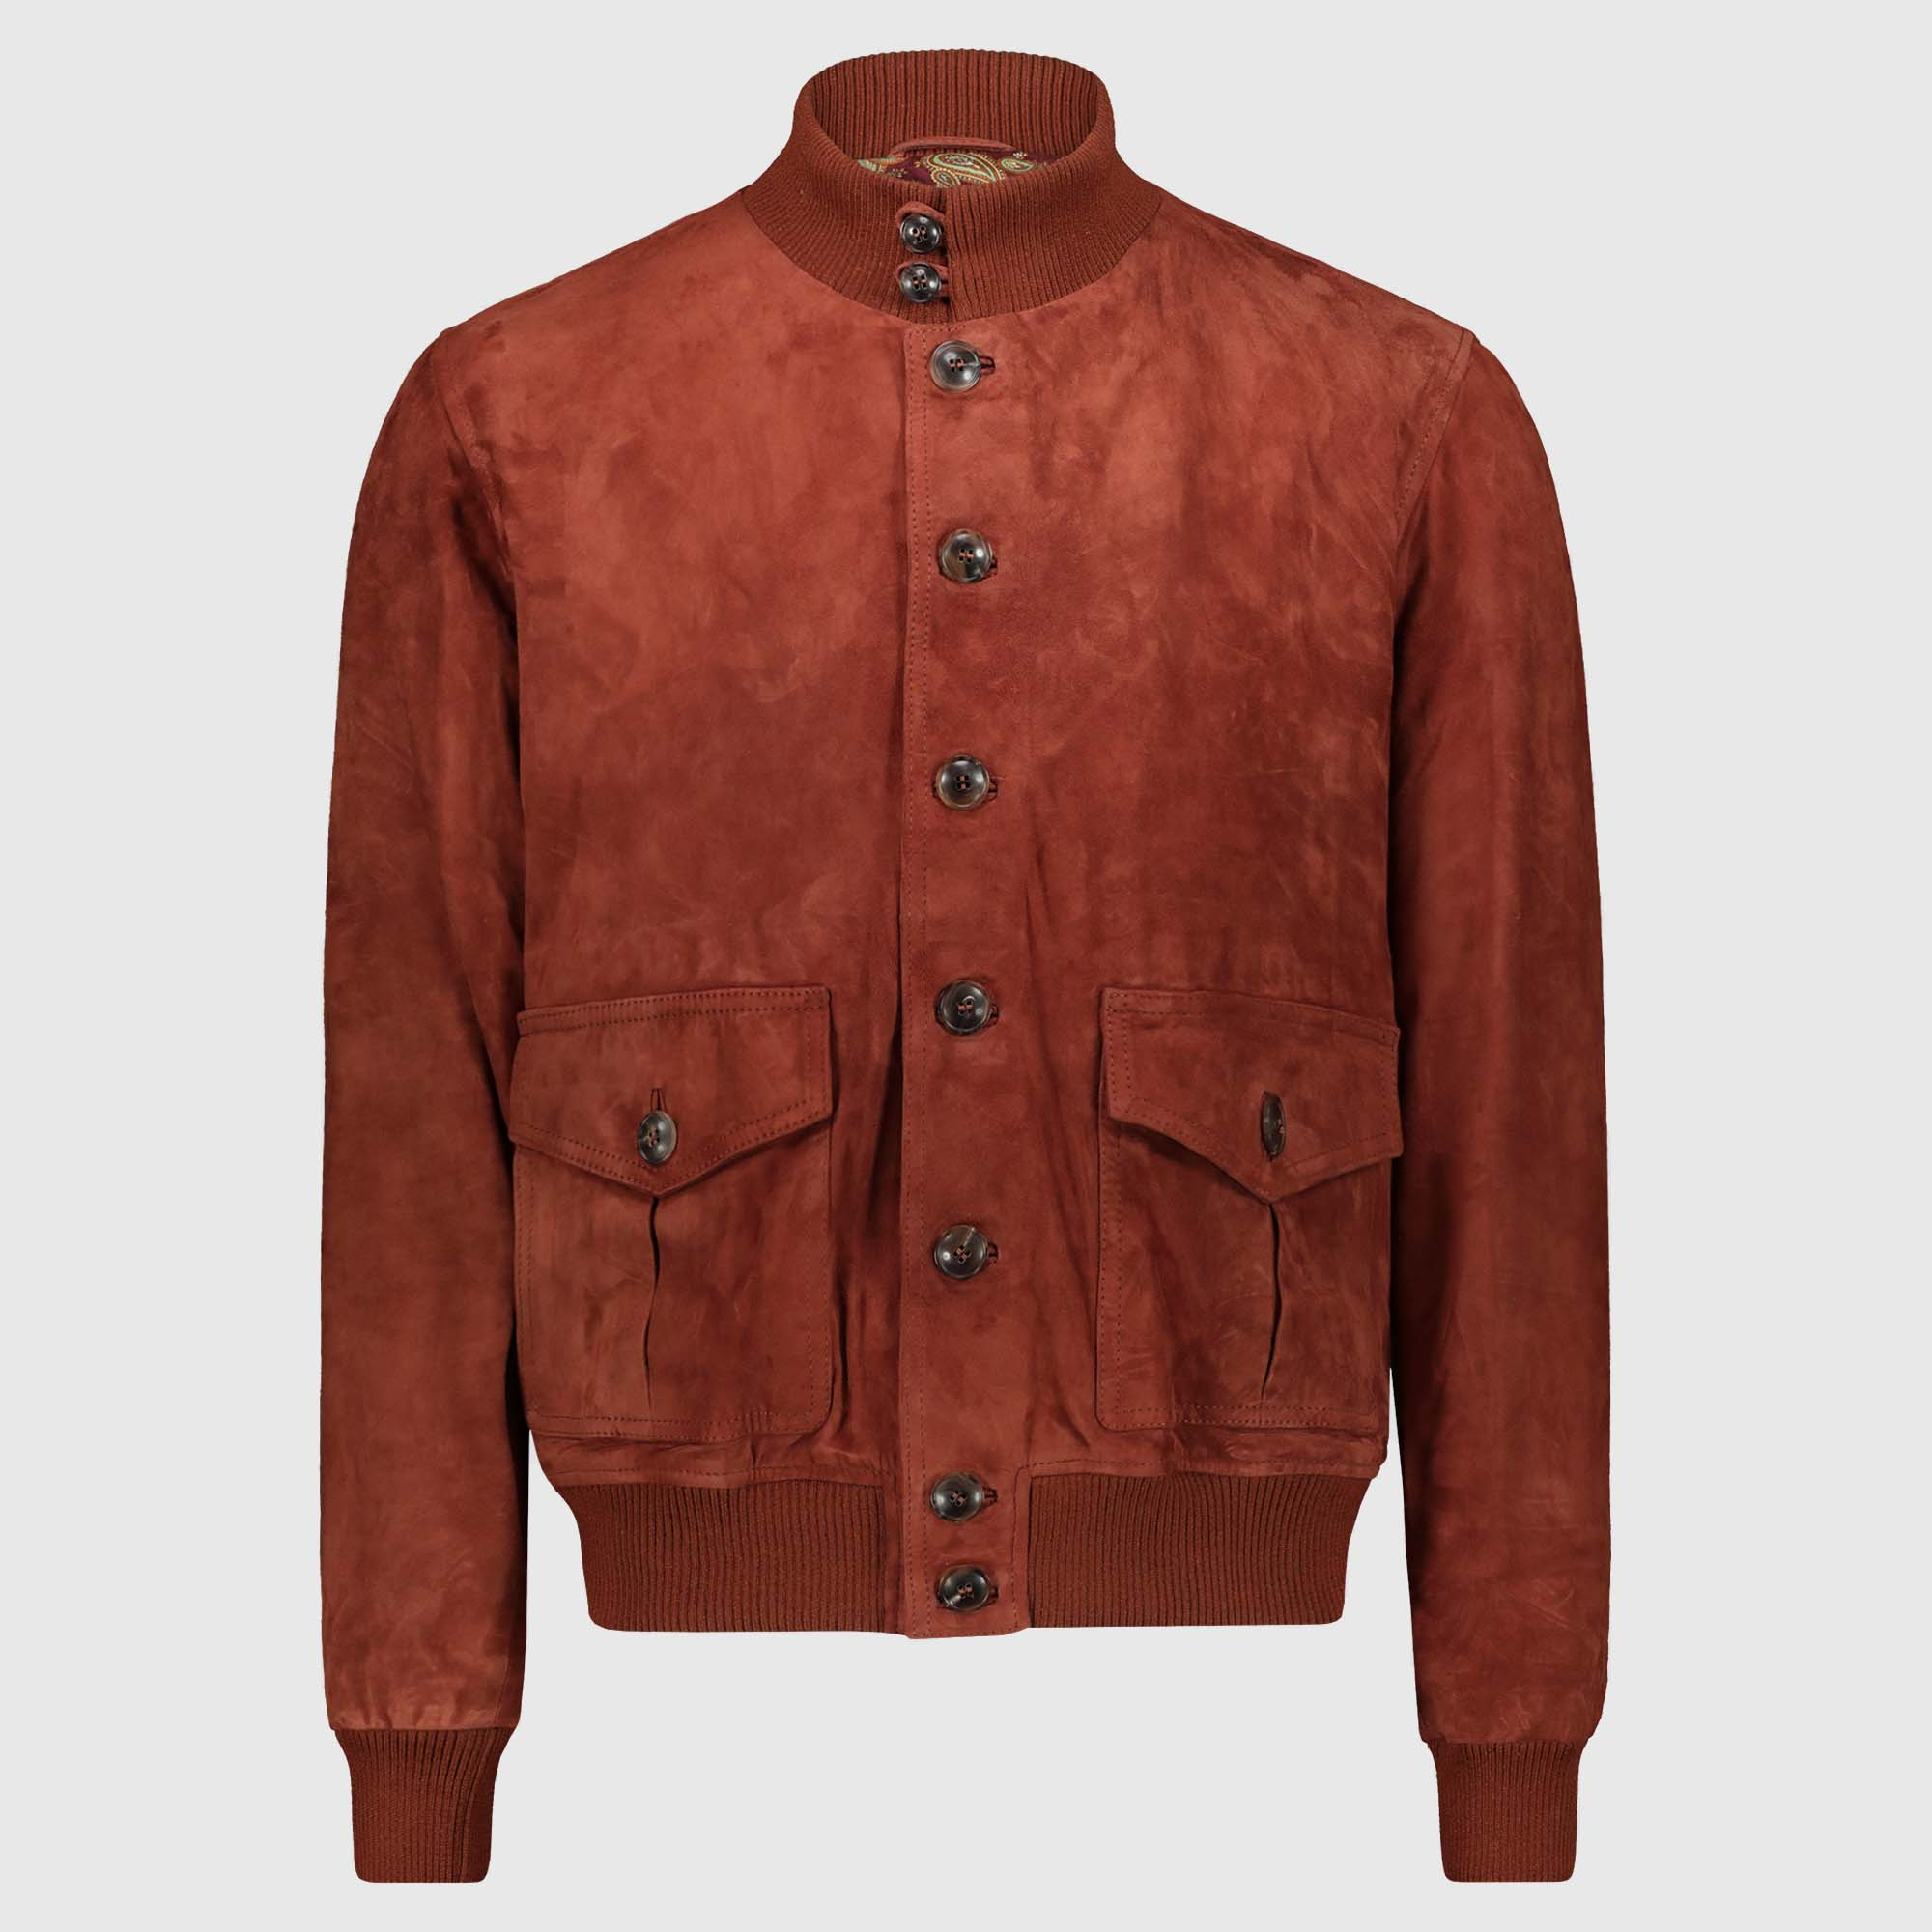 Brick suede Bomber Jacket A1 Cary